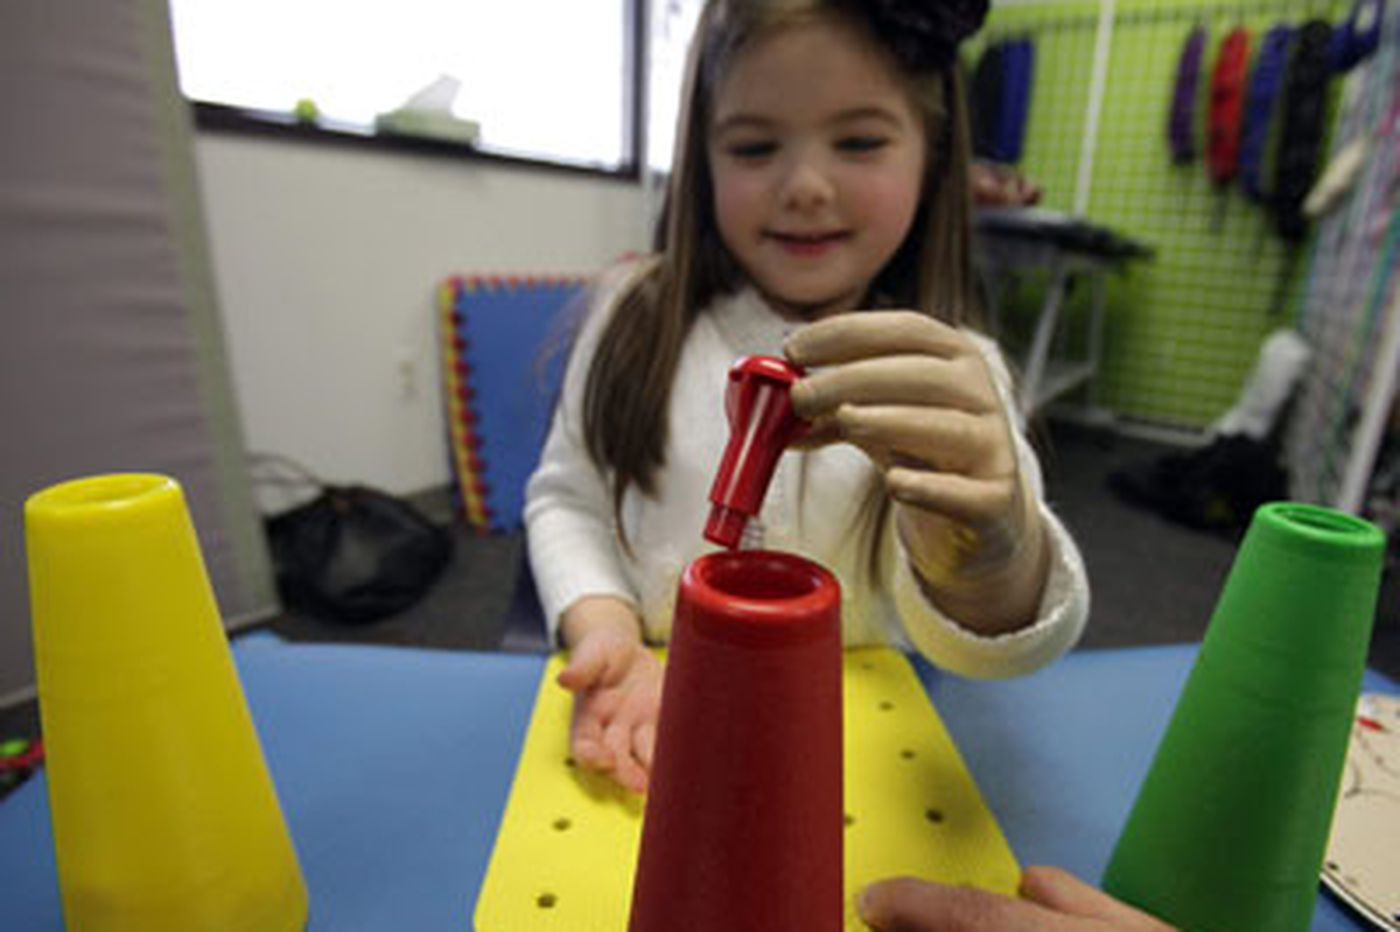 Children's lives changed by electronic arm program